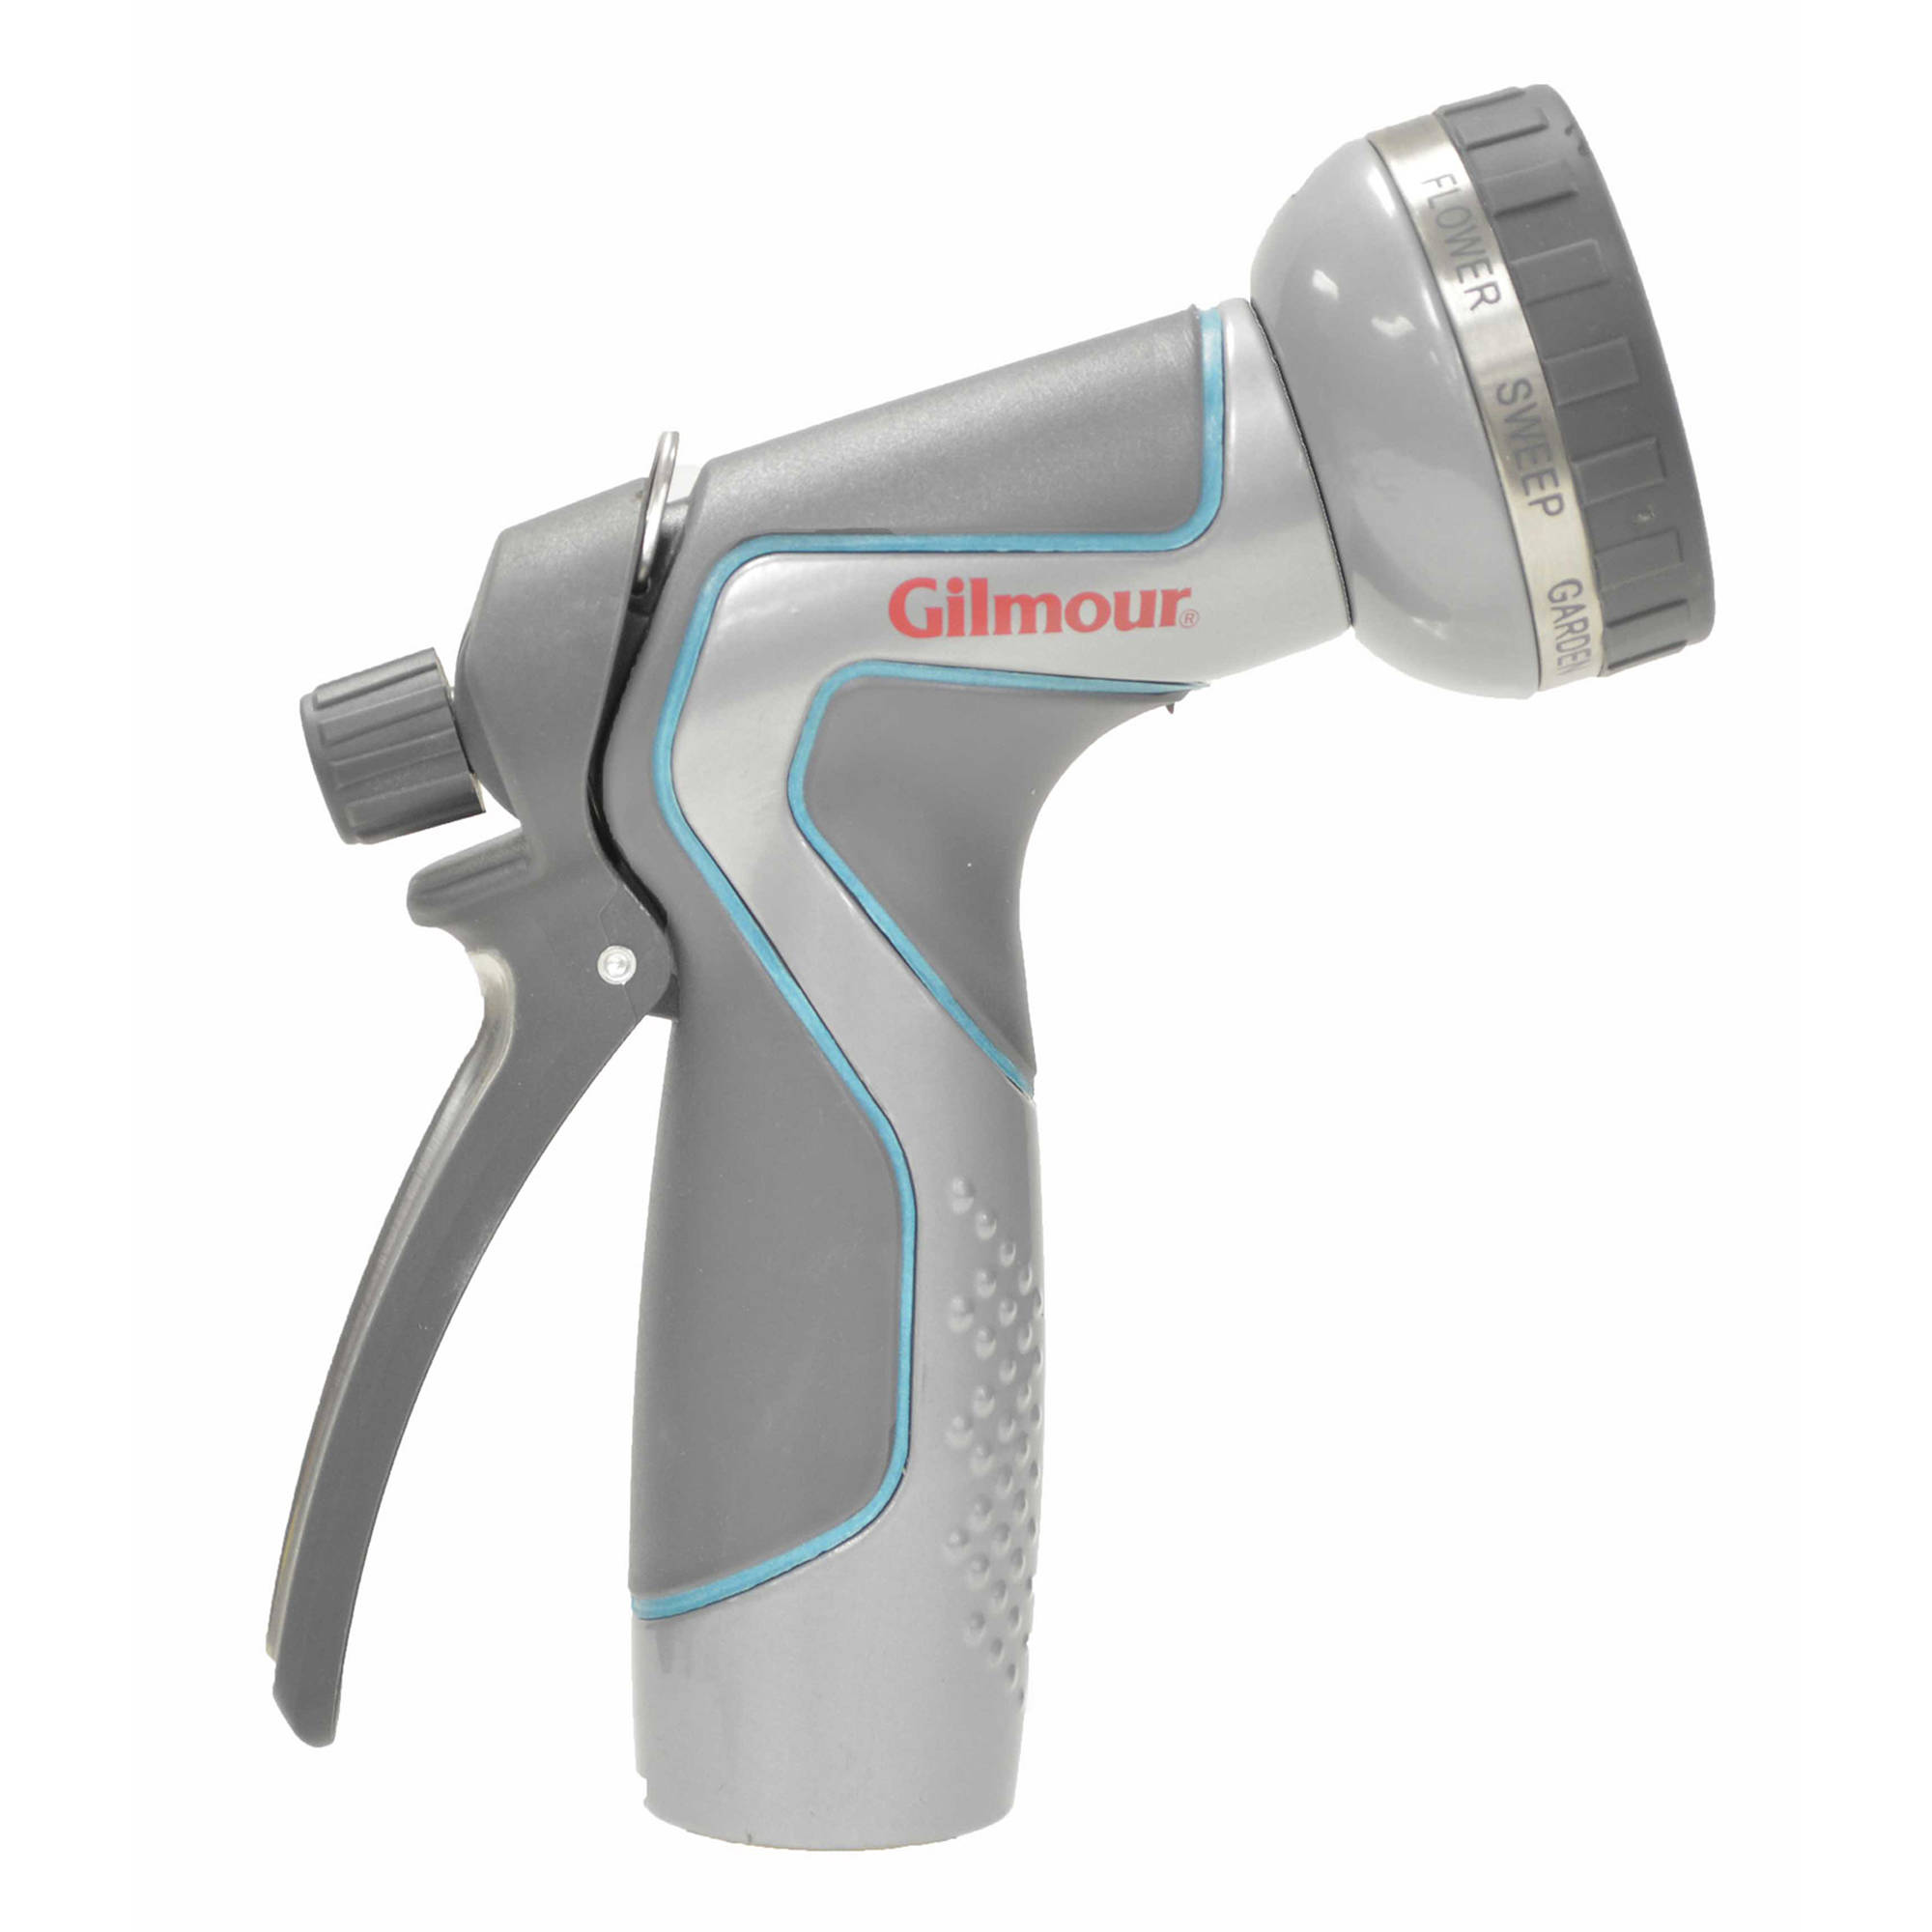 Gilmour 400GWR 8-Pattern Pisol Grip Nozzle